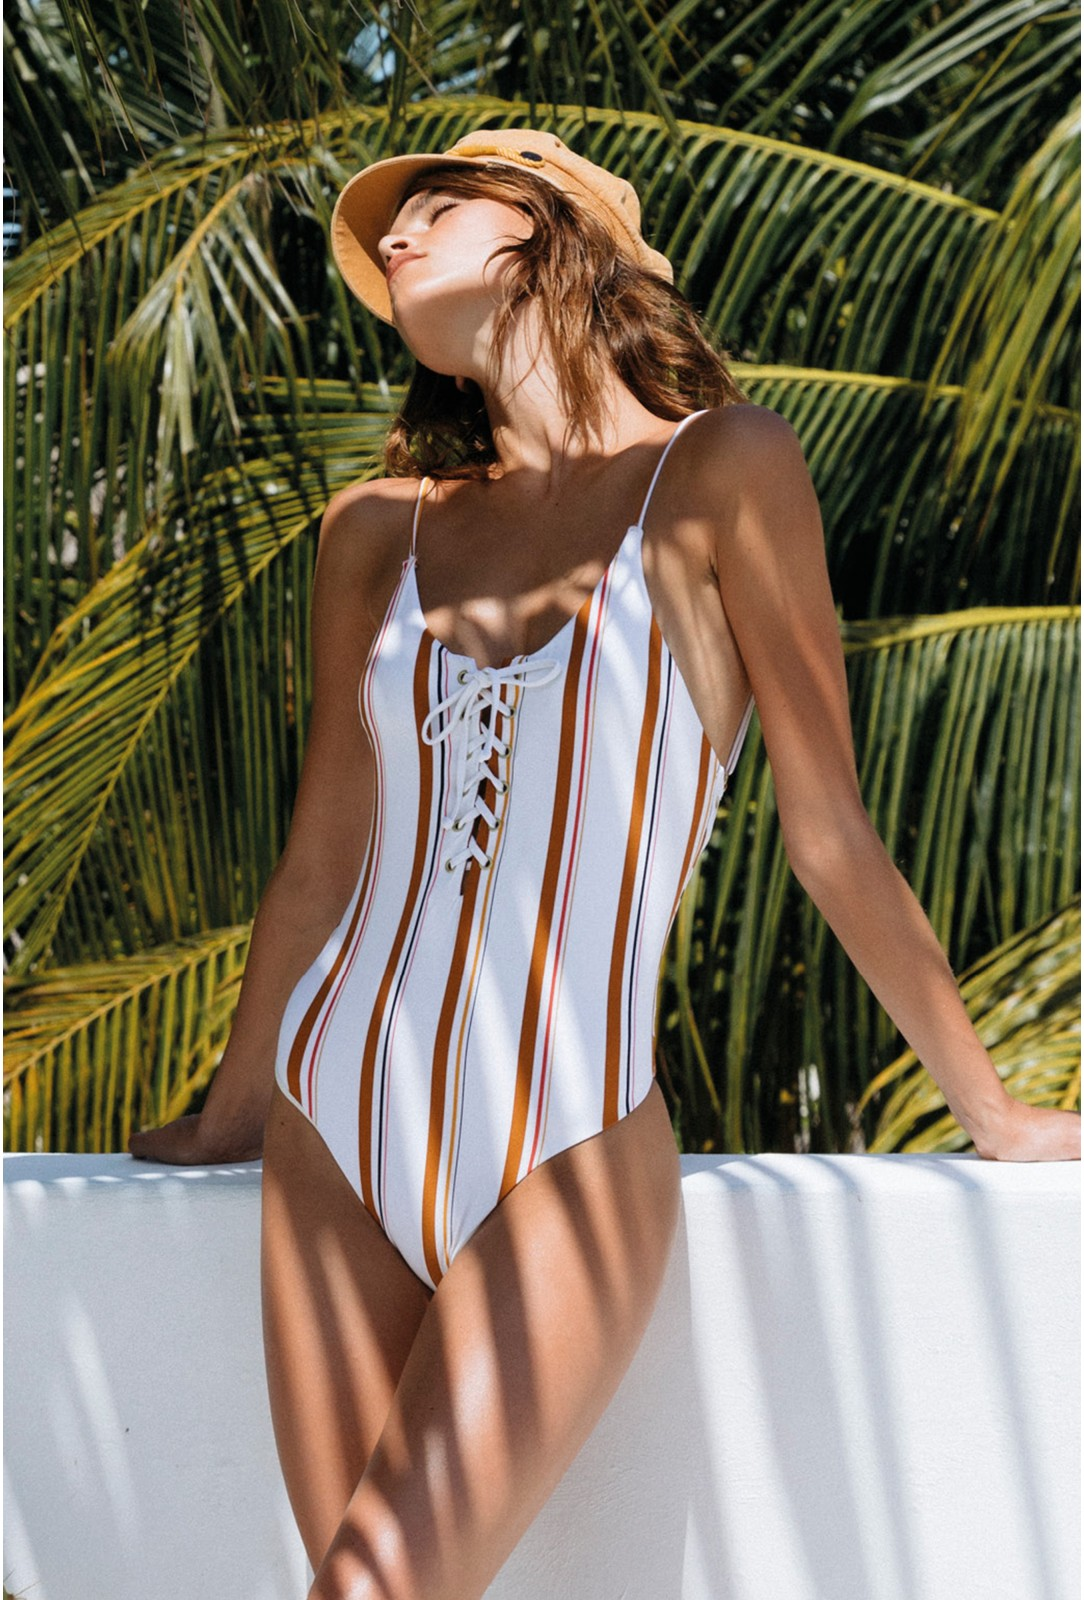 a6d0c8ed684 BILLABONG One Piece Suit, White with Stripes - Sunstruck One Piece ...